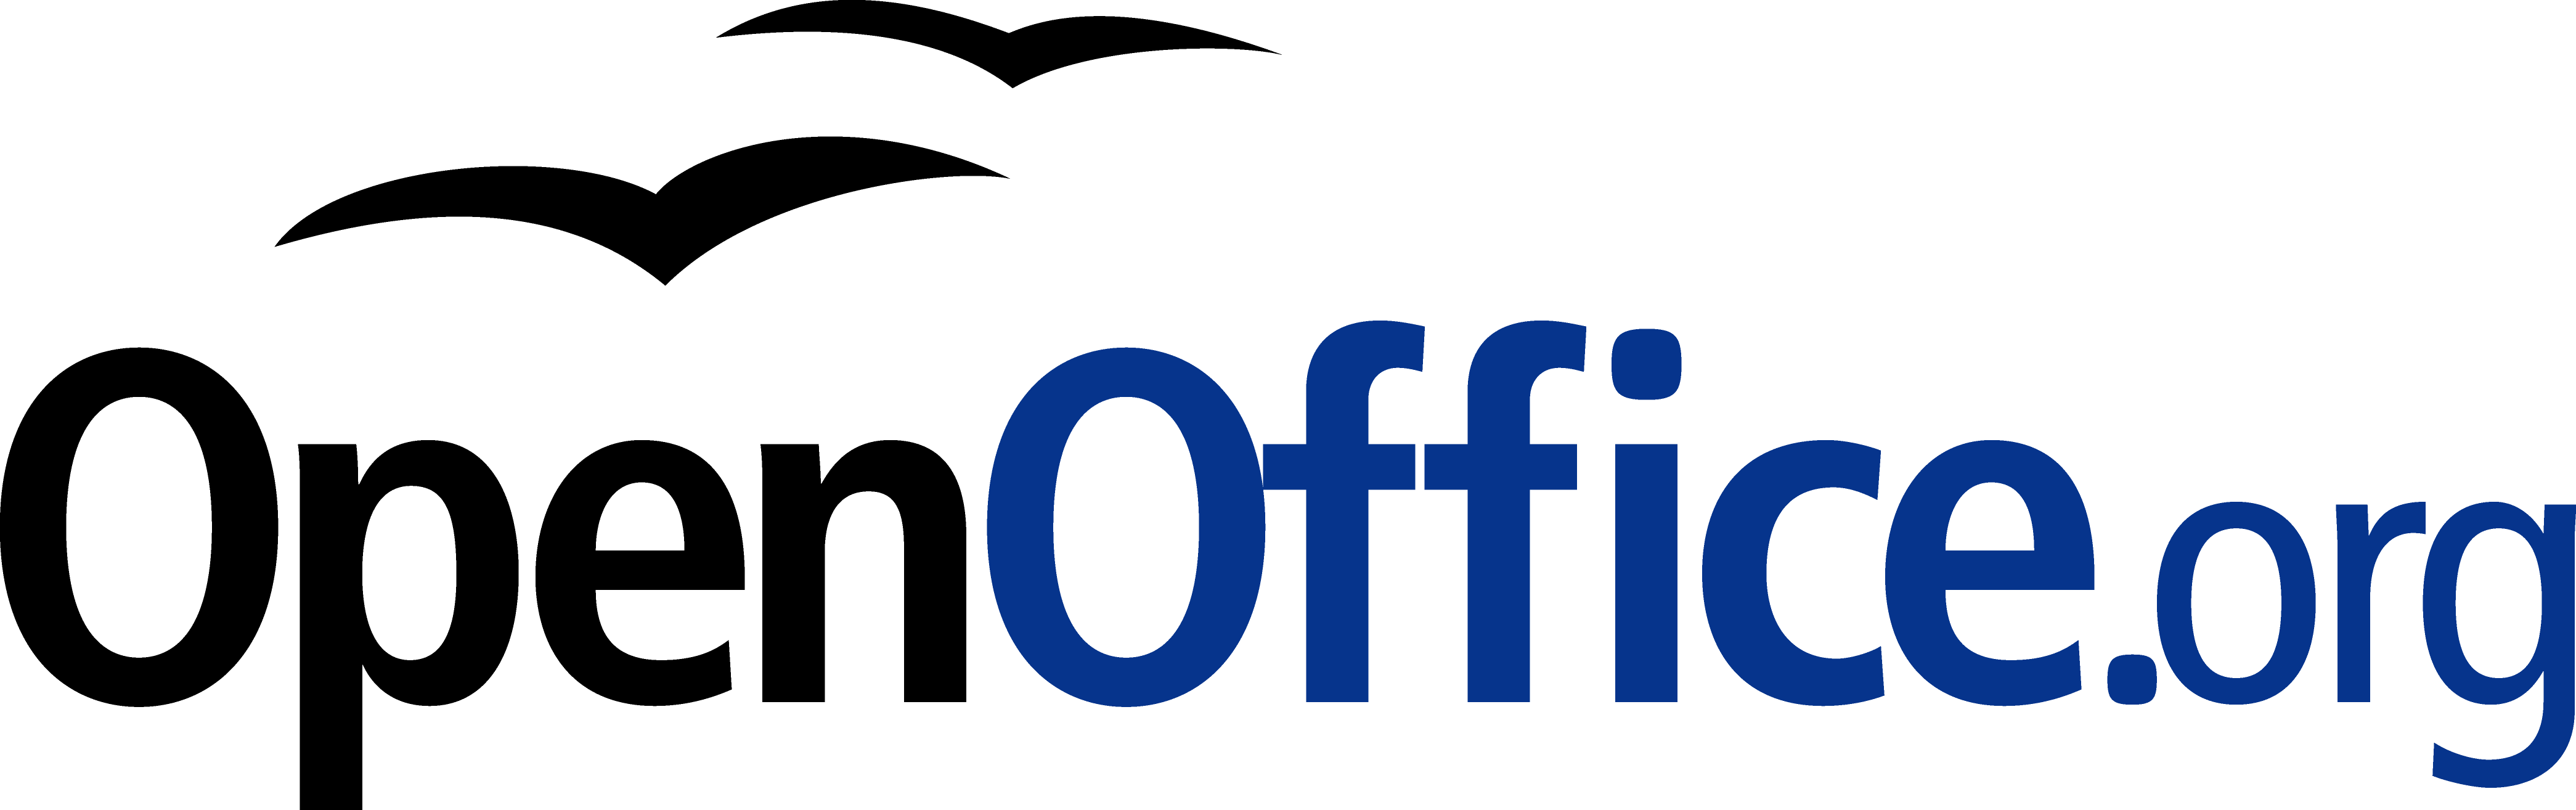 Images of OpenOffice.org | 4180x1314